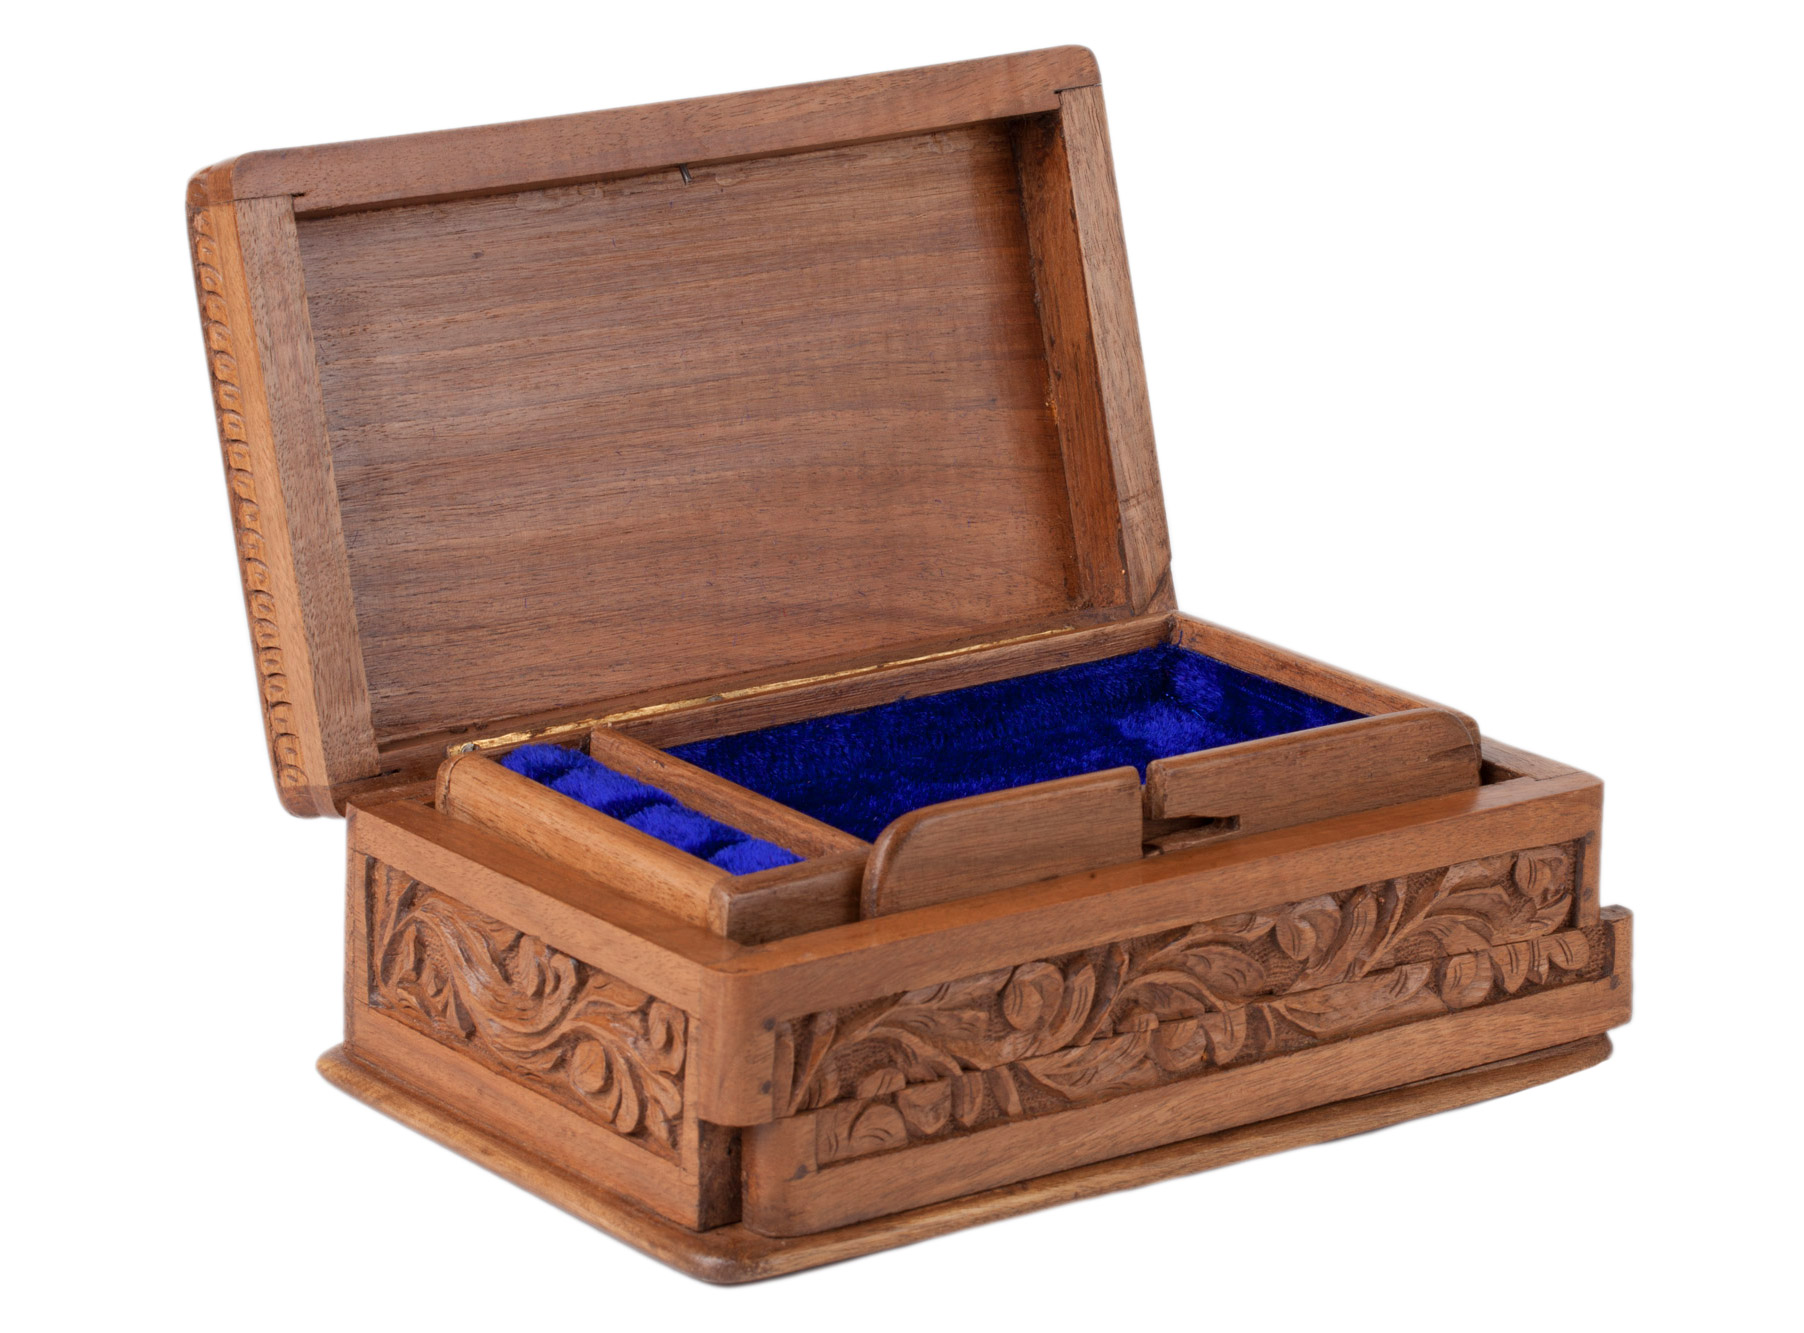 Walnut wood jewelry box asran decor for Jewelry box made of wood